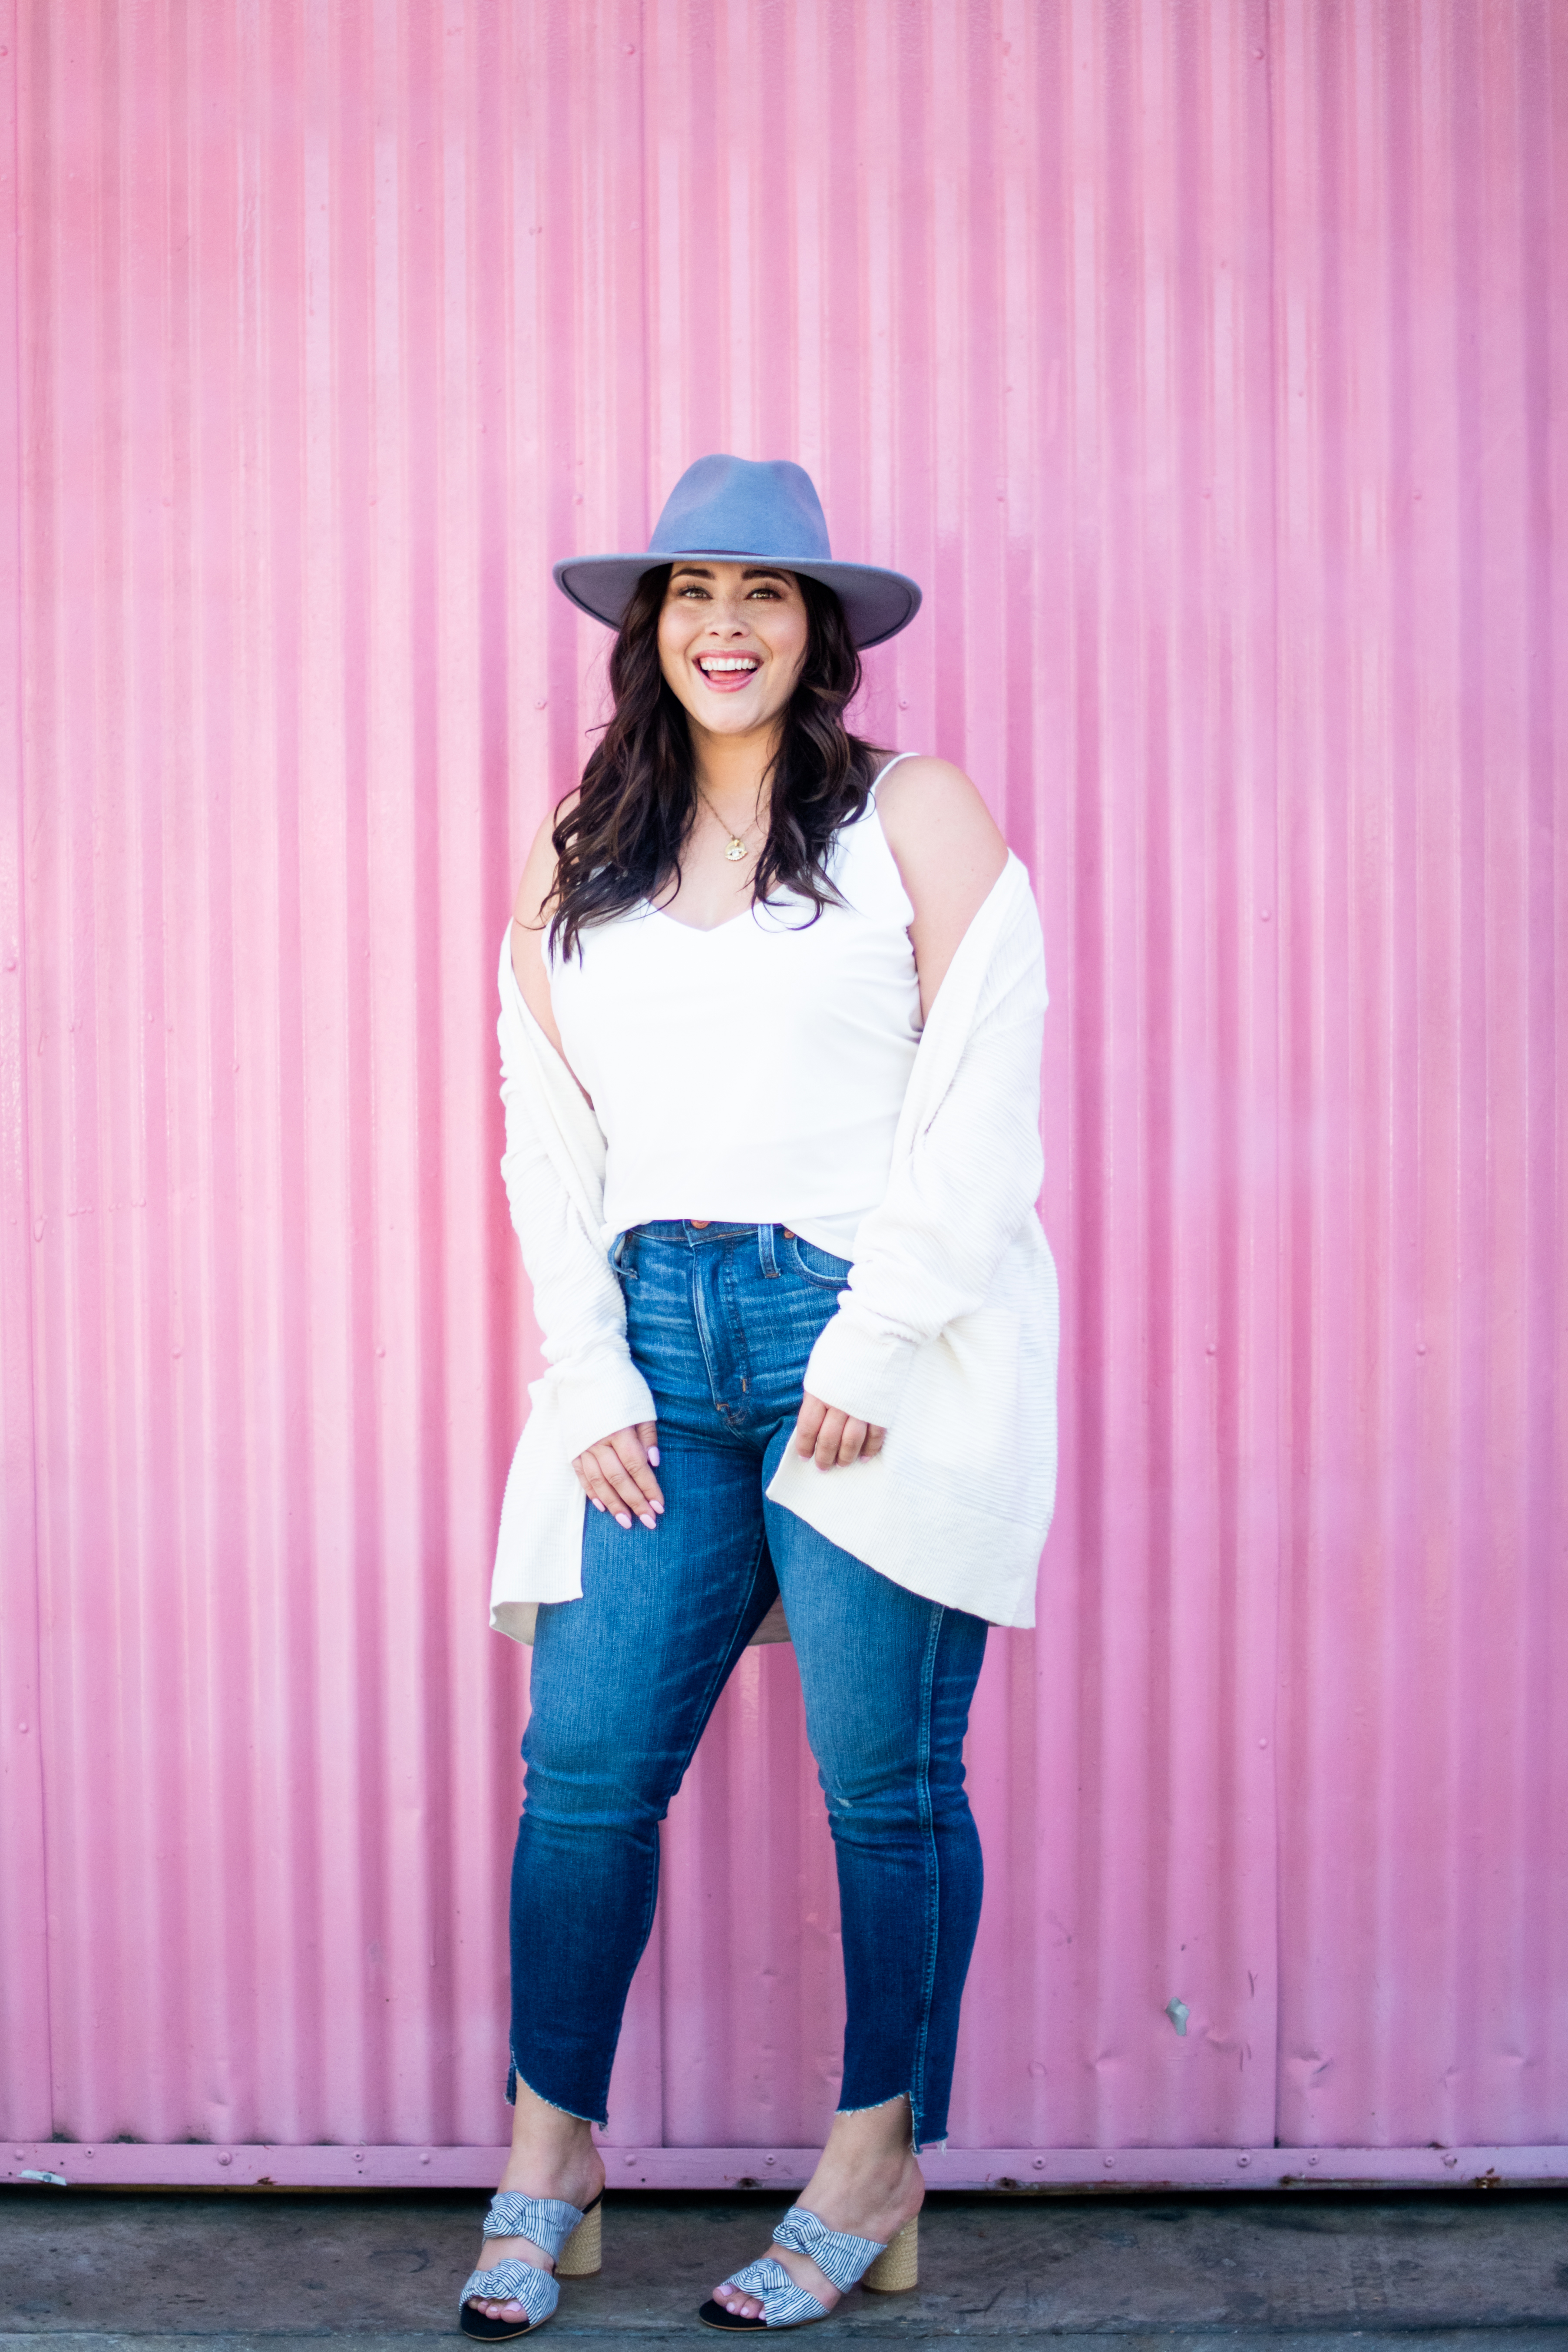 lifestyle content social media photography photo shoot pink wall los angeles